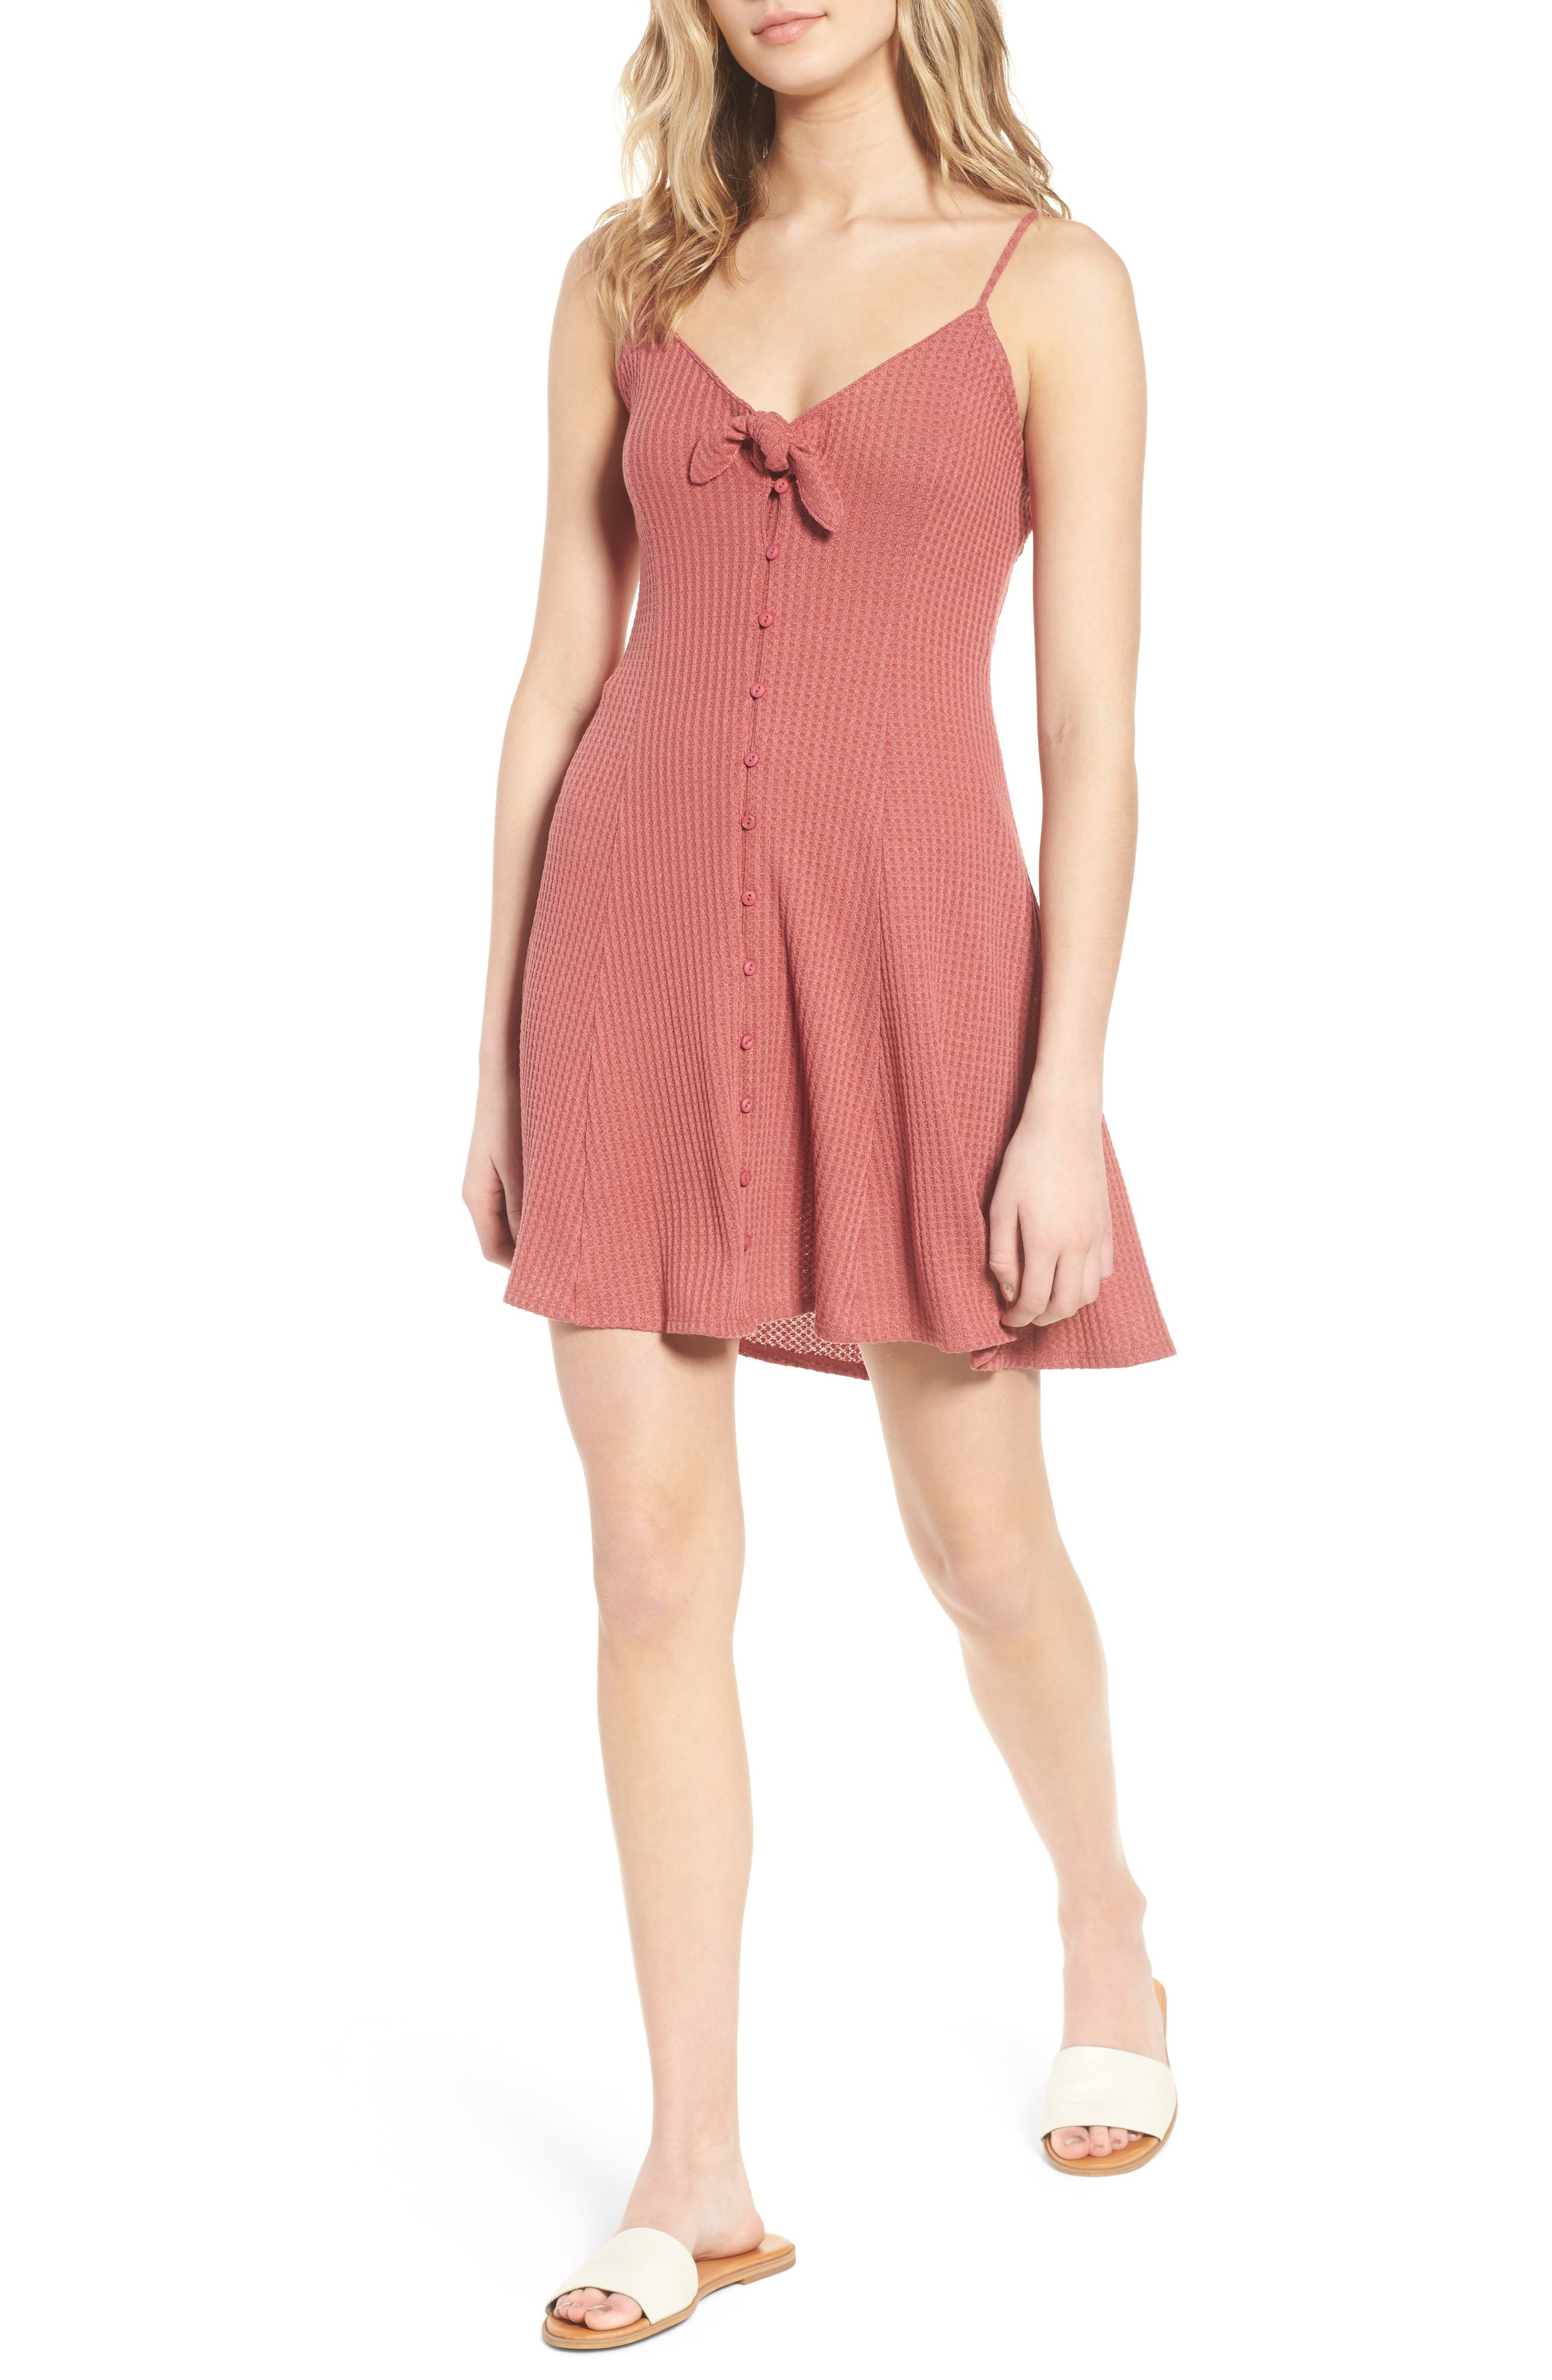 Lost Lovers Thermal Minidress,                         Main,                         color, Baked Pink